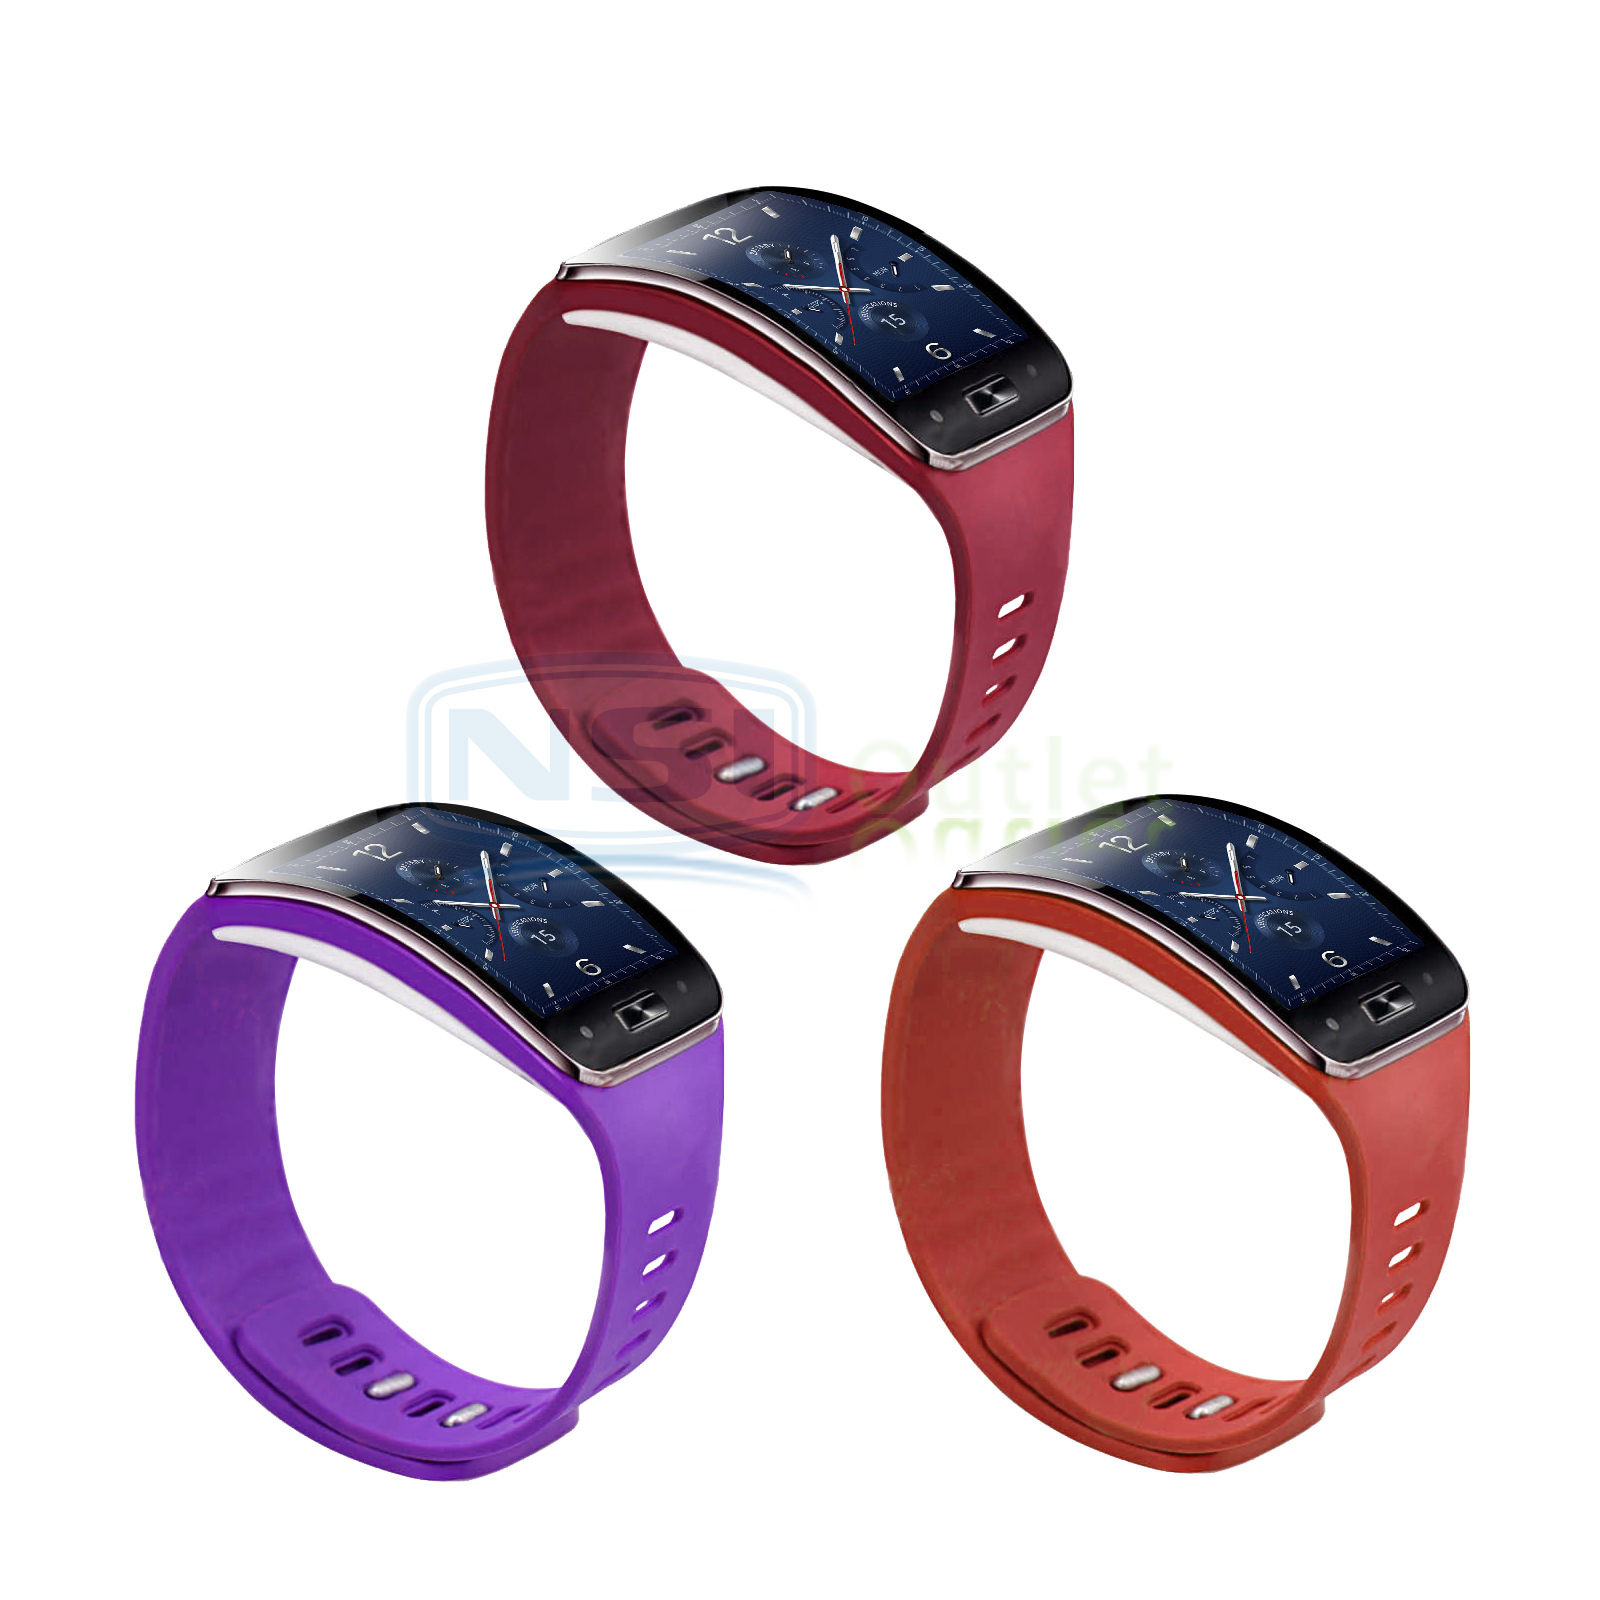 Replacement-Wrist-Band-Strap-Bracelet-w-Clasp-For-Samsung-Galaxy-Gear-S-SM-R750